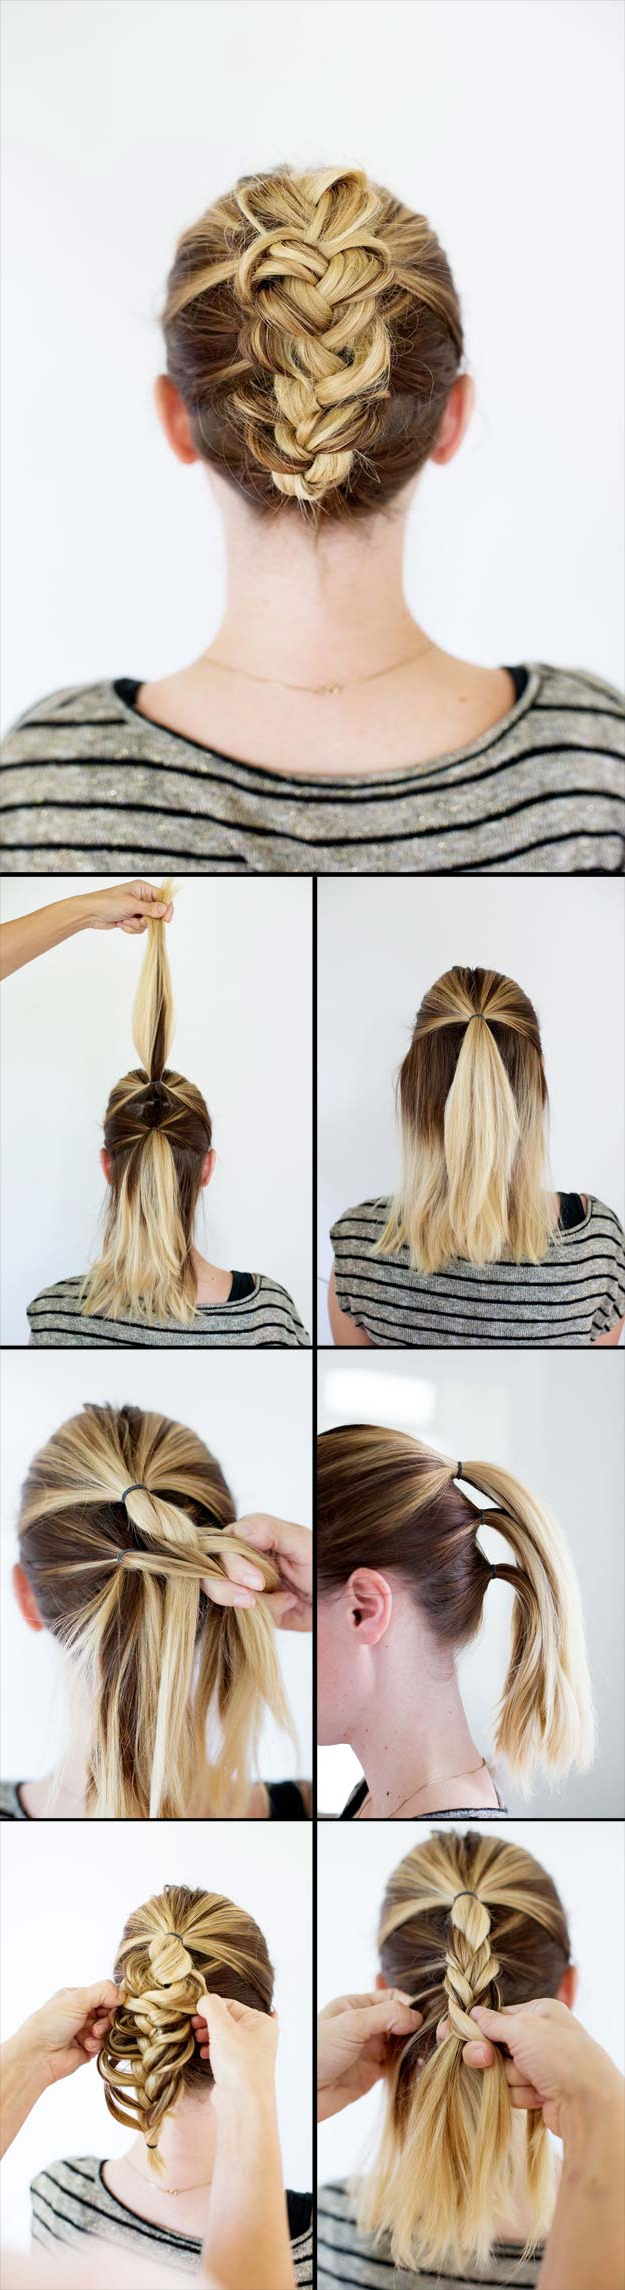 33 Best Hairstyles For Your 20S – The Goddess For Trendy Medium Hairstyles For Women In Their 20S (View 7 of 20)